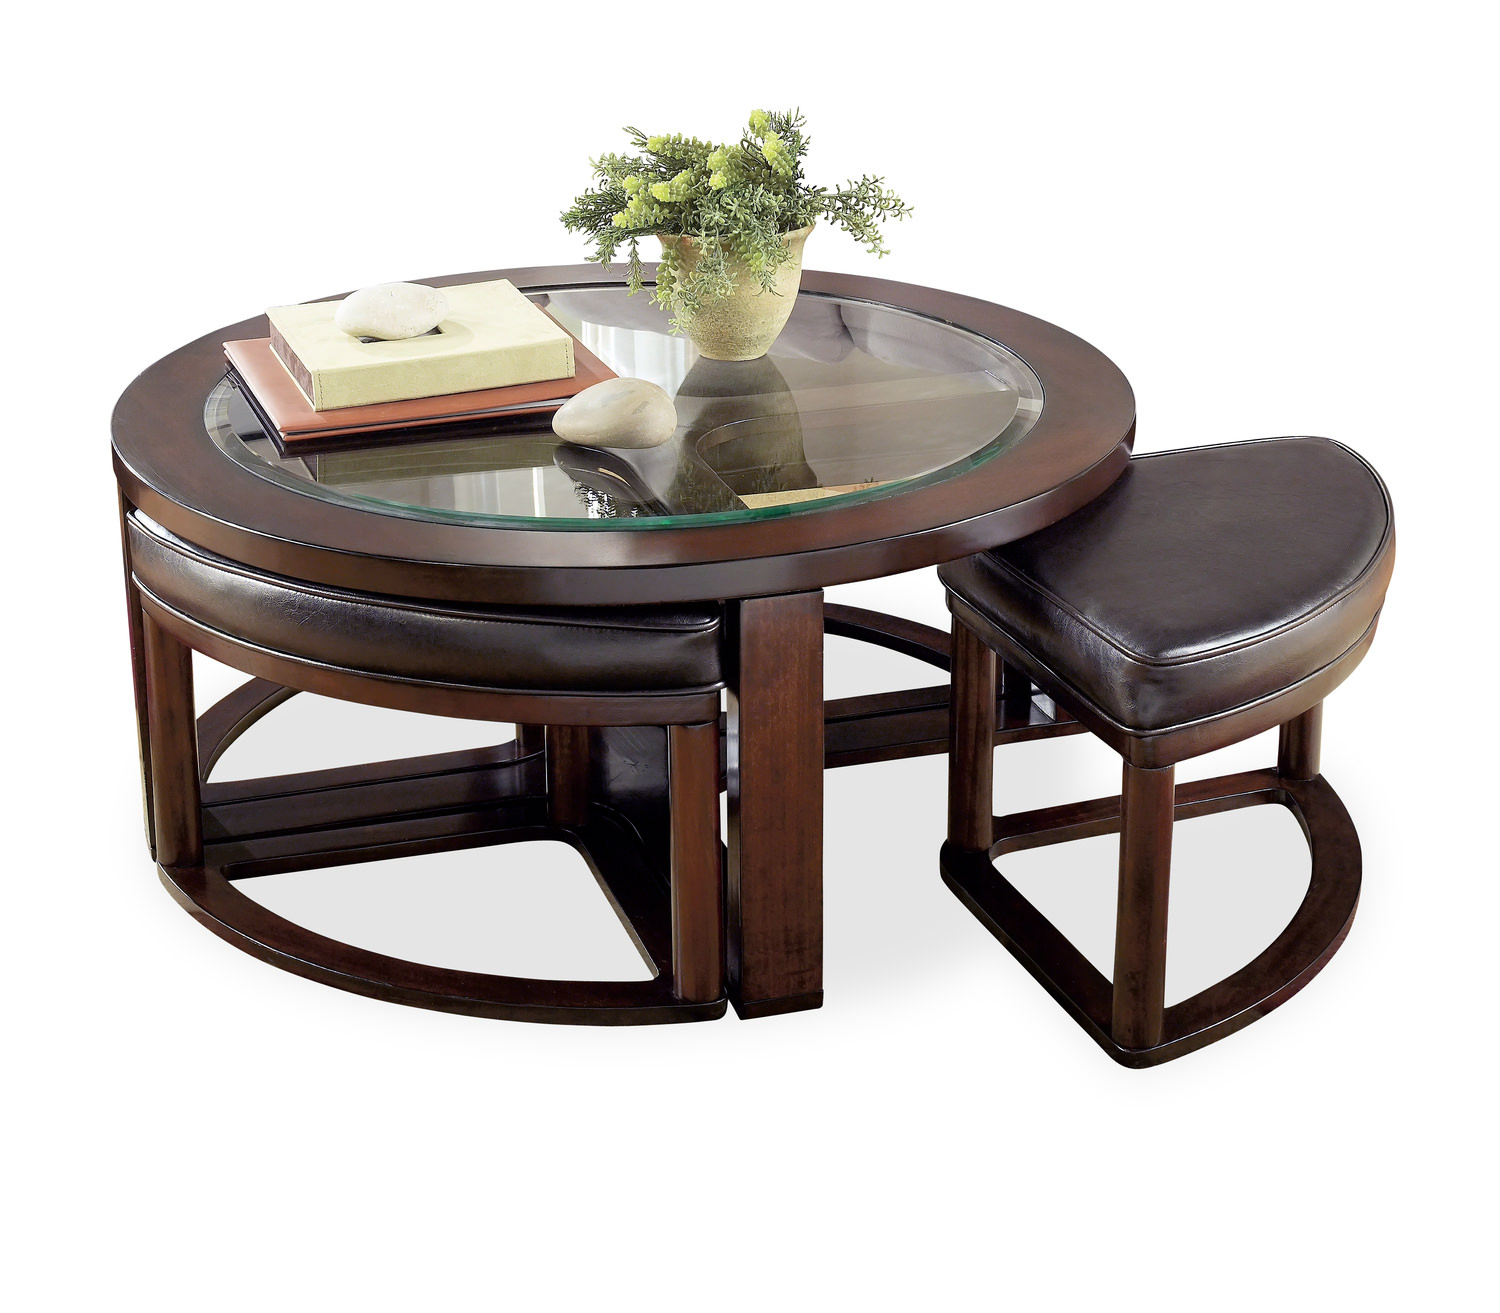 Charmant Marion Round Coffee Table With 4 Ottomans ...